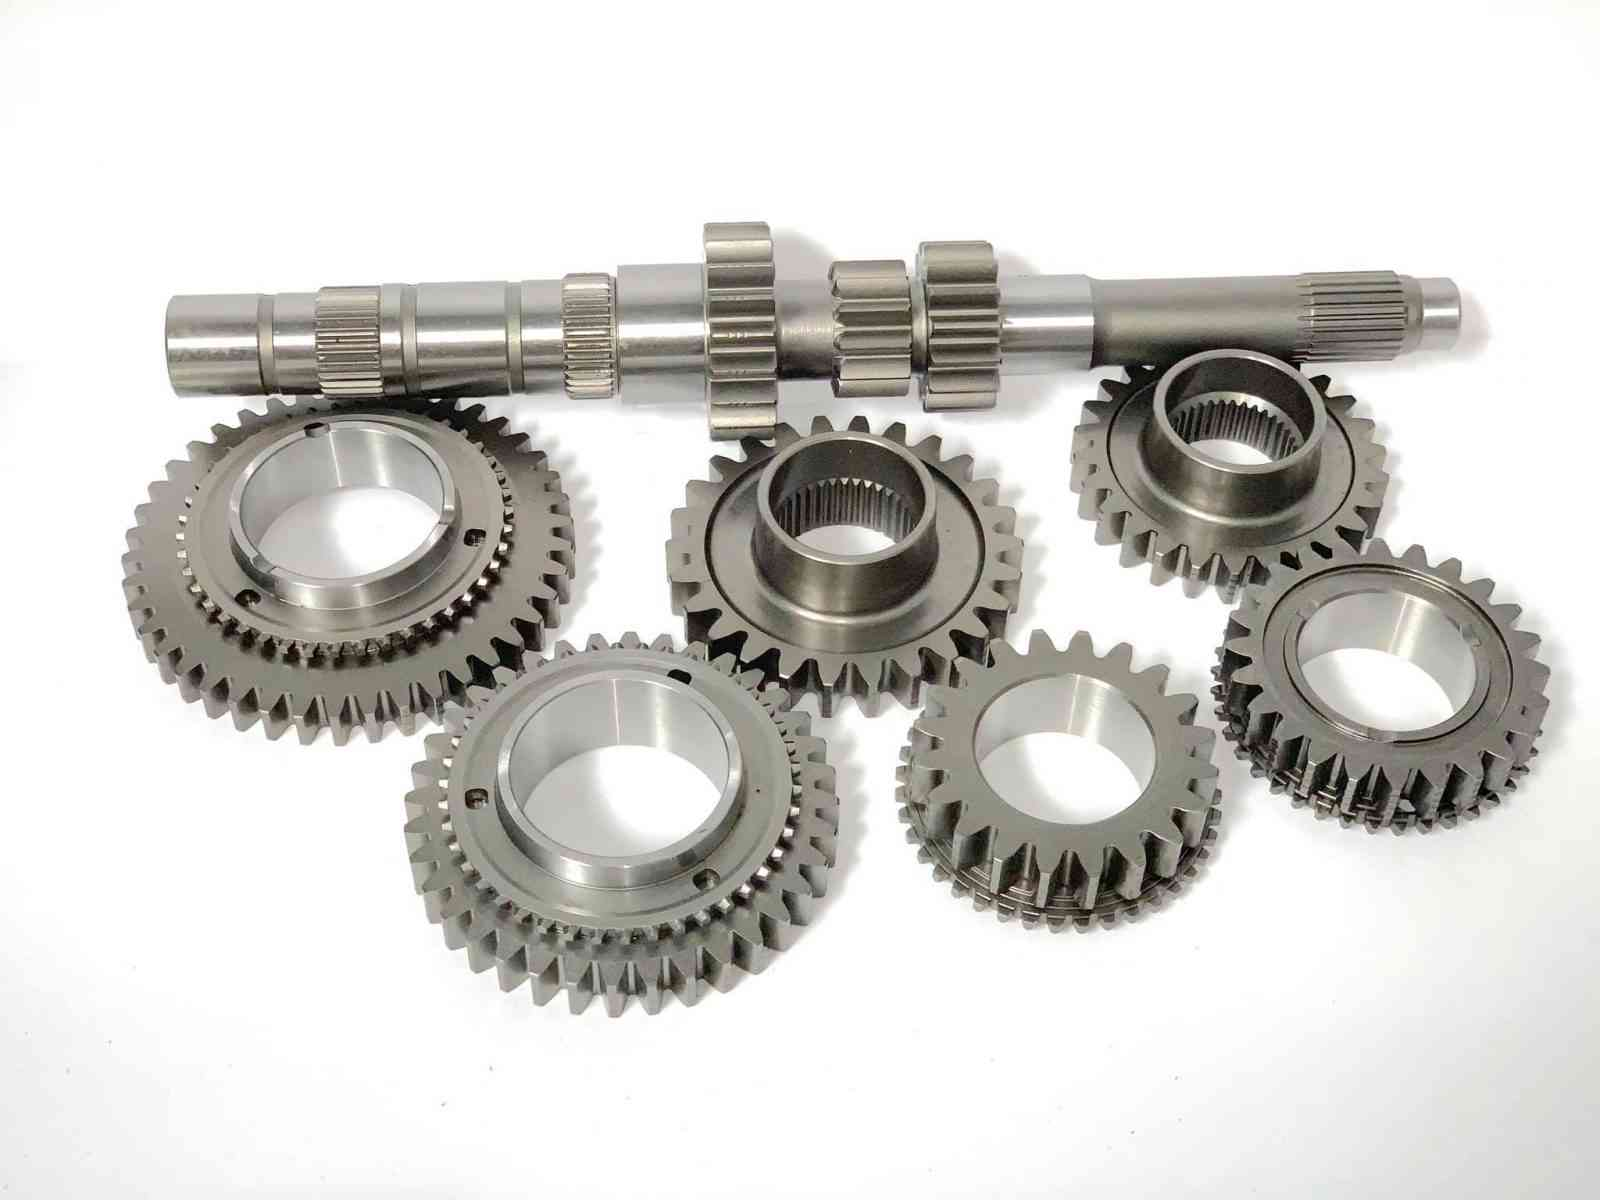 The Advantages And Disadvantages Of Straight Cut Gears